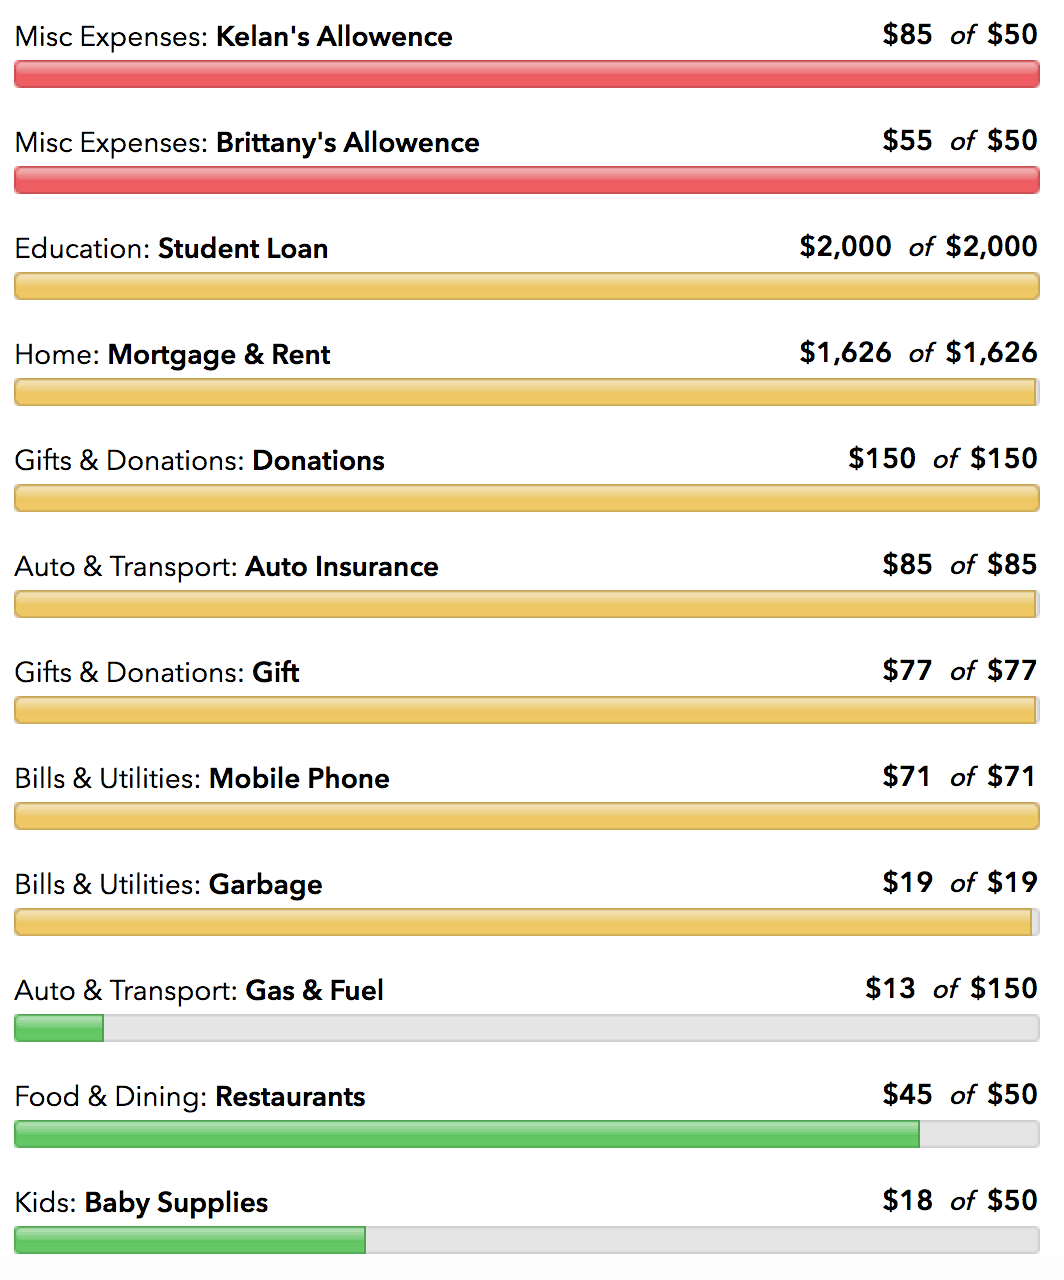 Mint budgeting app screenshot of expense categories